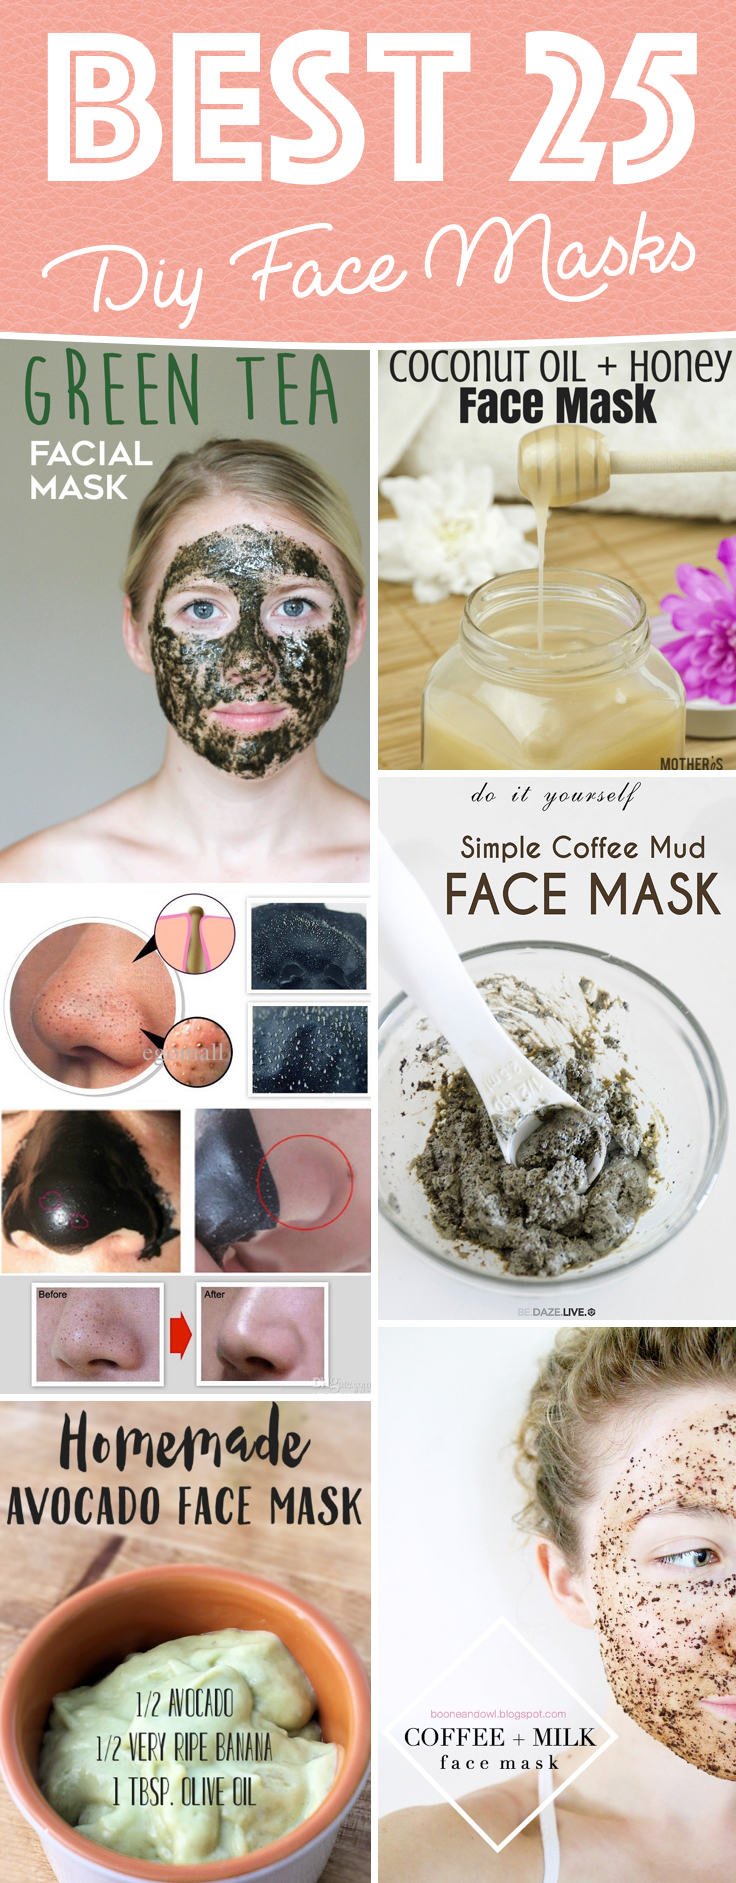 25 Diy Face Masks Casting A Magical Spell On Your Skin